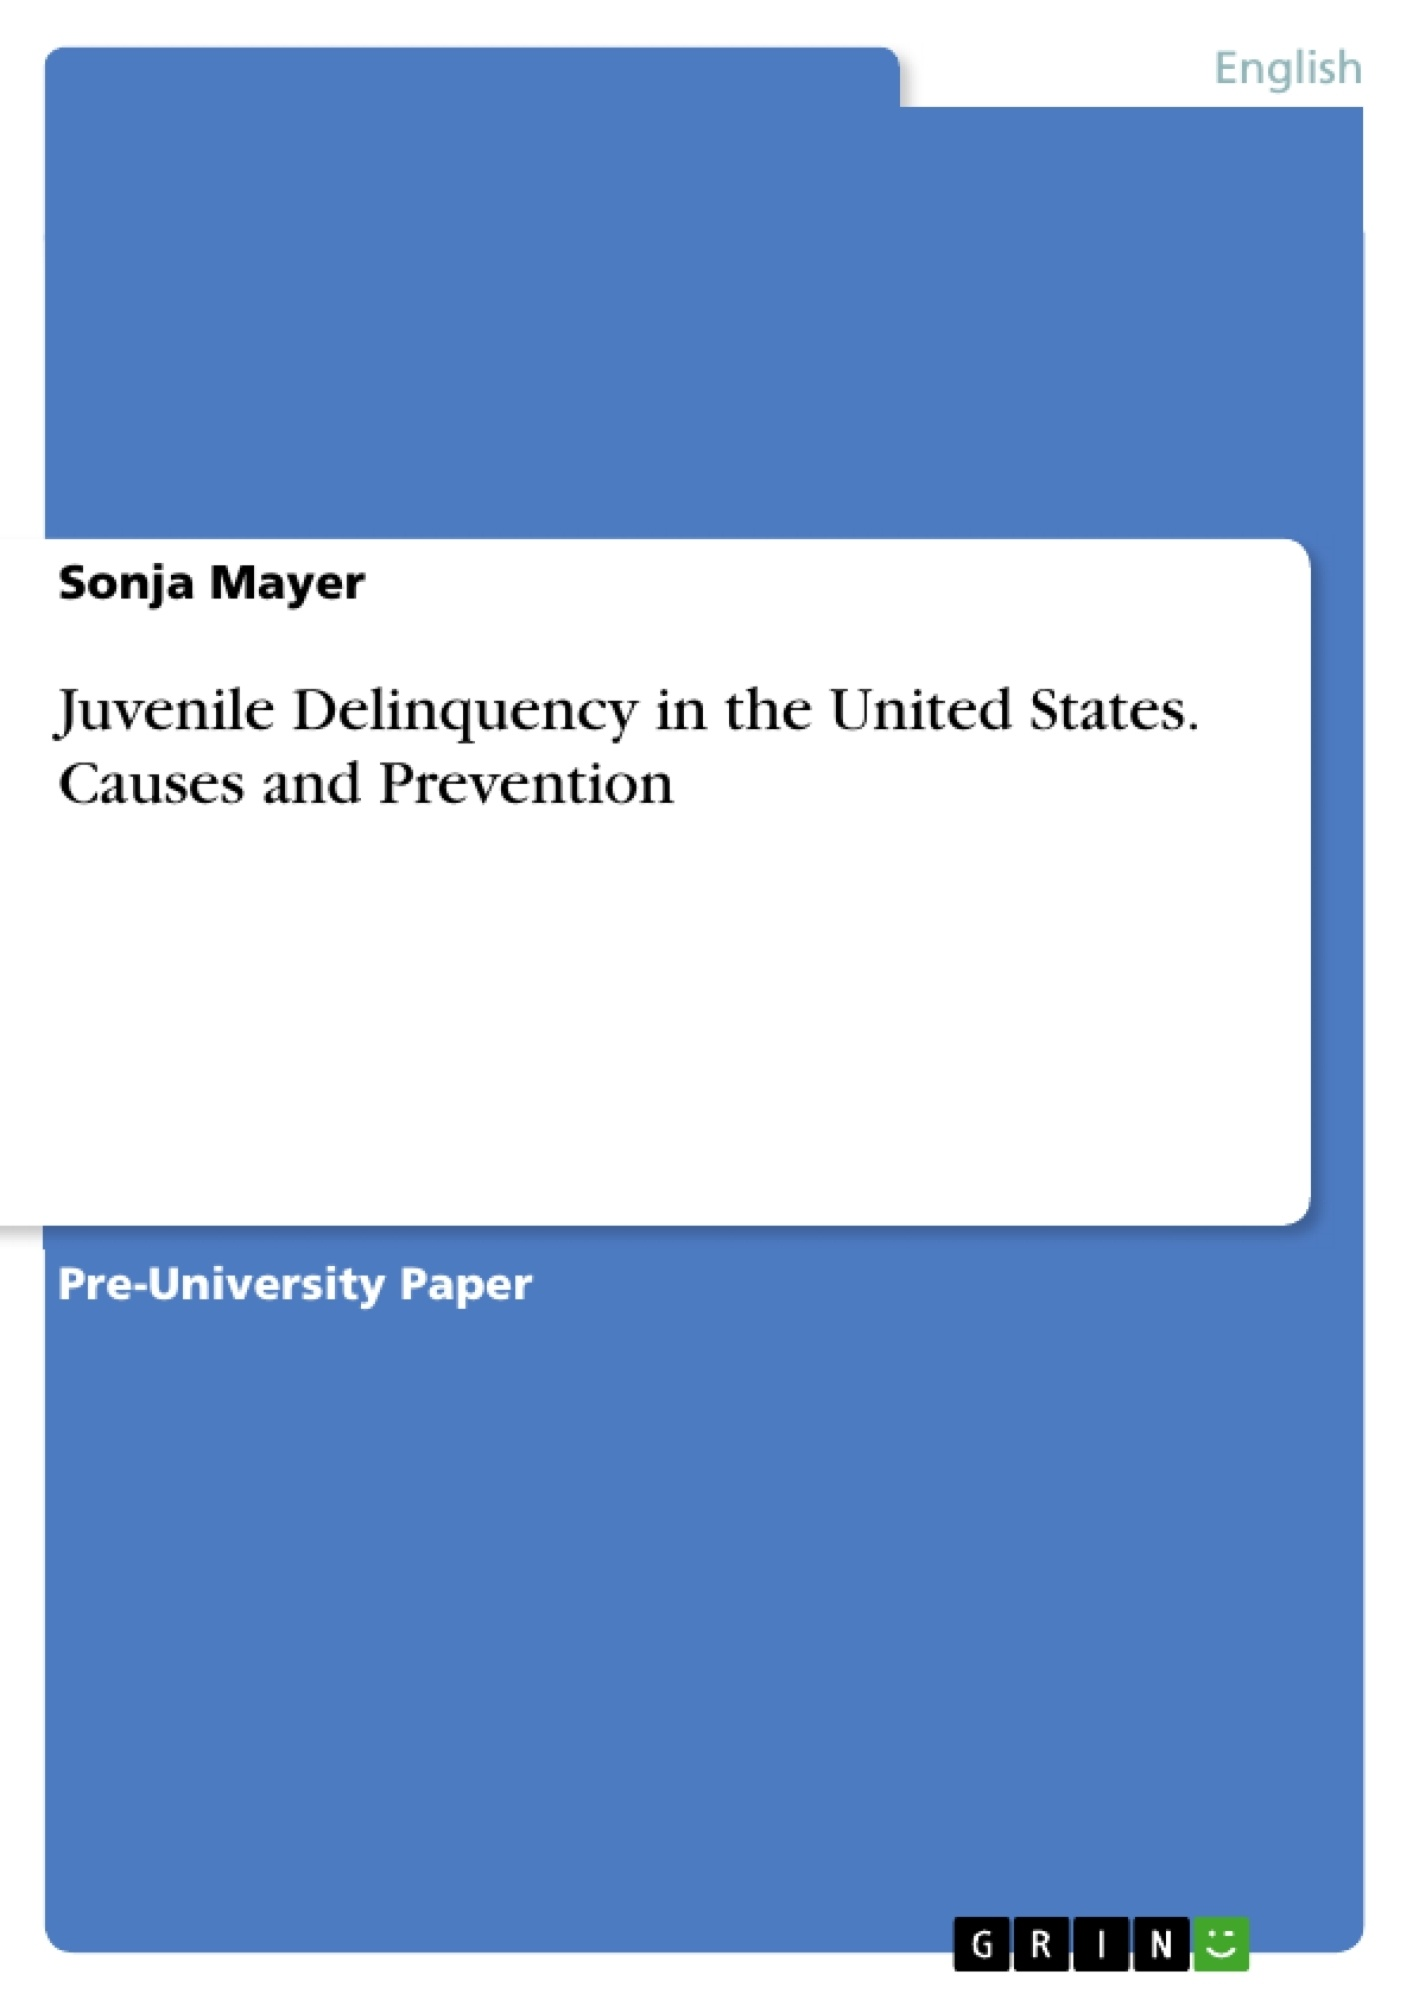 Title: Juvenile Delinquency in the United States. Causes and Prevention